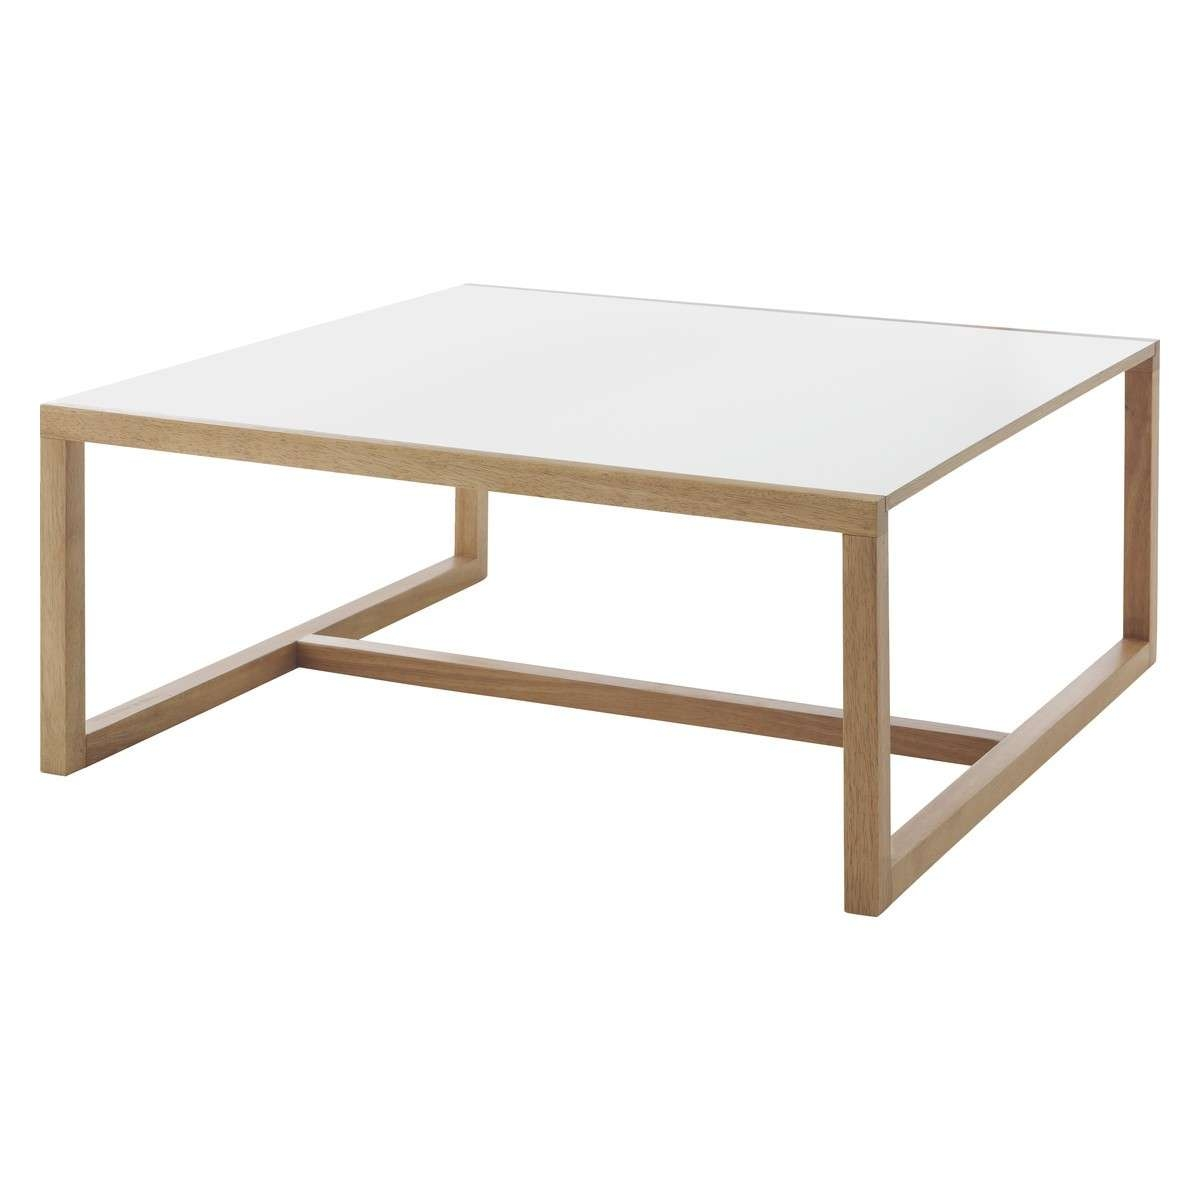 Buy Now At Habitat Uk For Well Liked White Square Coffee Table (View 10 of 20)